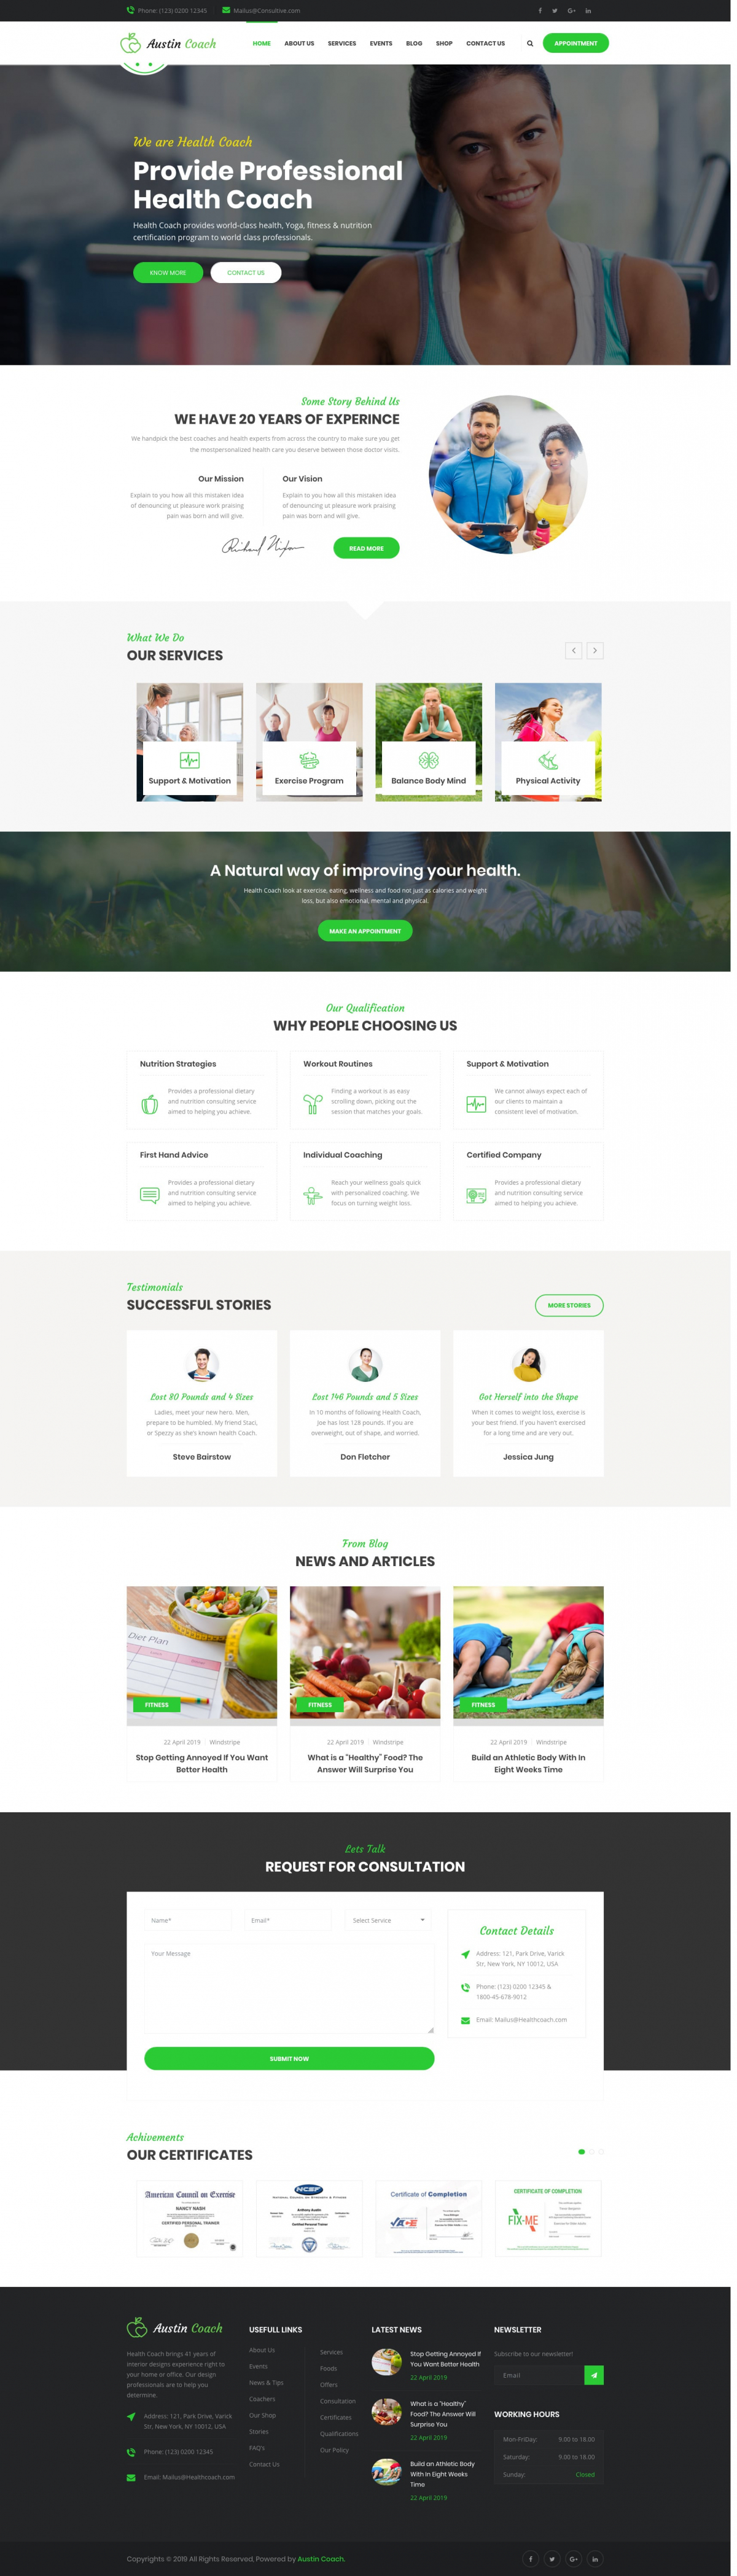 Austincoach - Health, Fitness, Personal Life Coaching Joomla Template